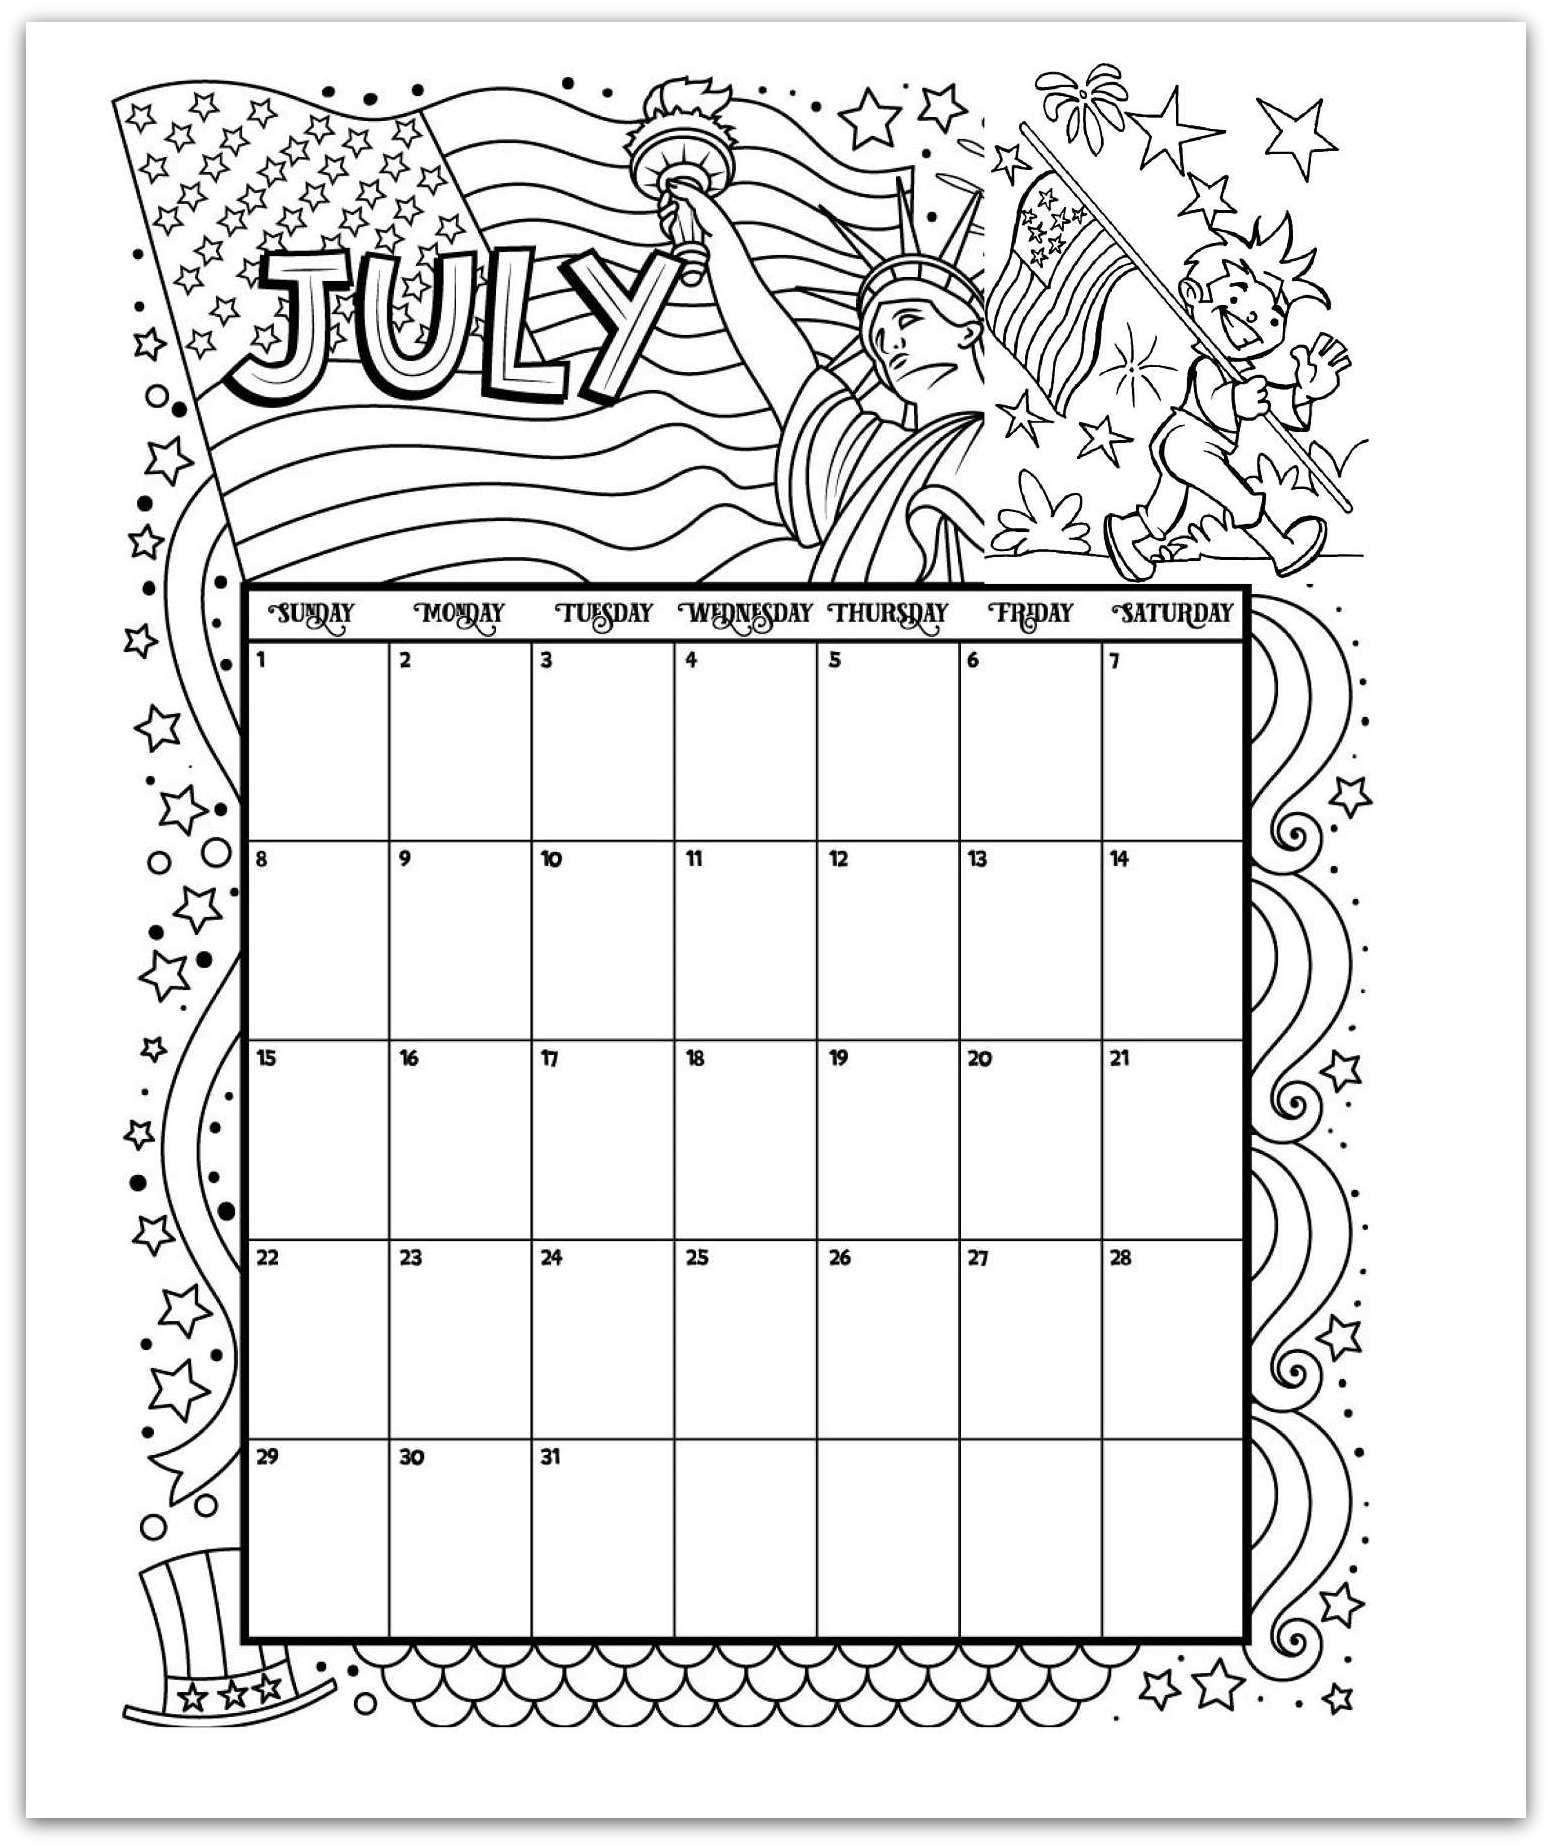 July 2019 Coloring Page Printable Calendar | Planning 2017-2019 for Free Coloring Calendars For June